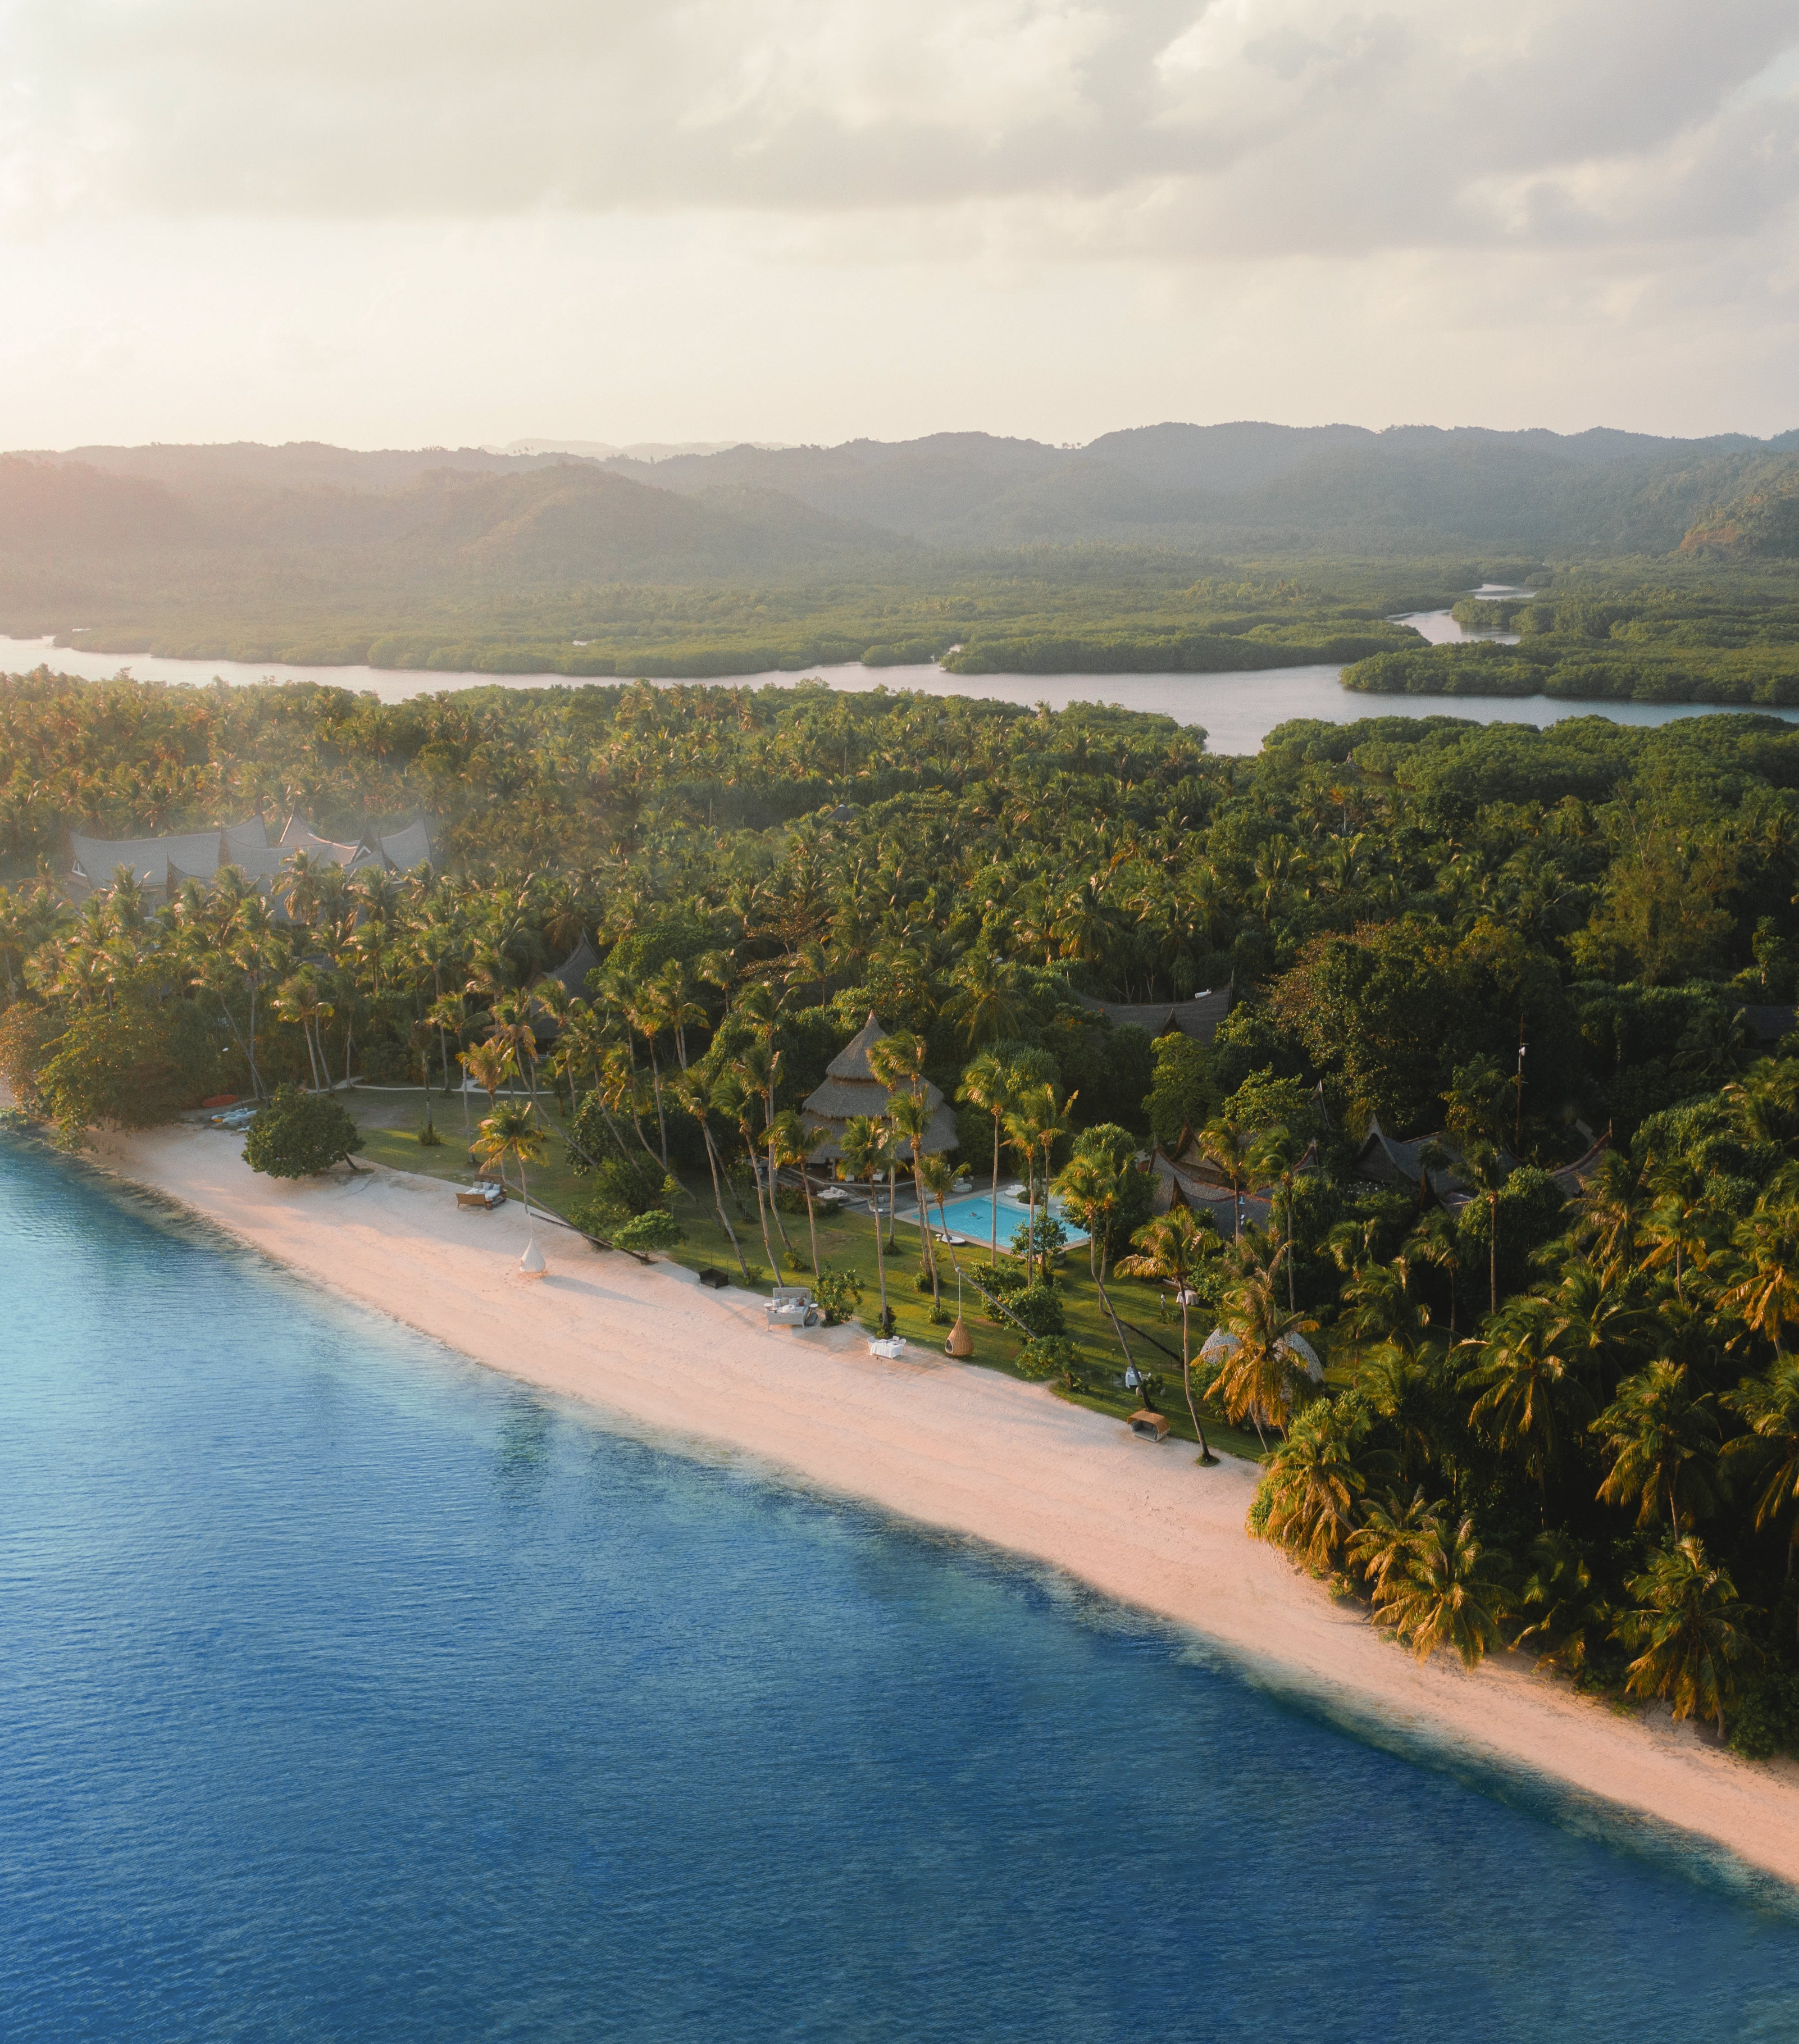 An aerial shot of Nay Palad Hideaway on Siargao Island, Philippines. This regenerative resort has a plastic-free policy and is active in coastal cleanups and mangrove reforestation.